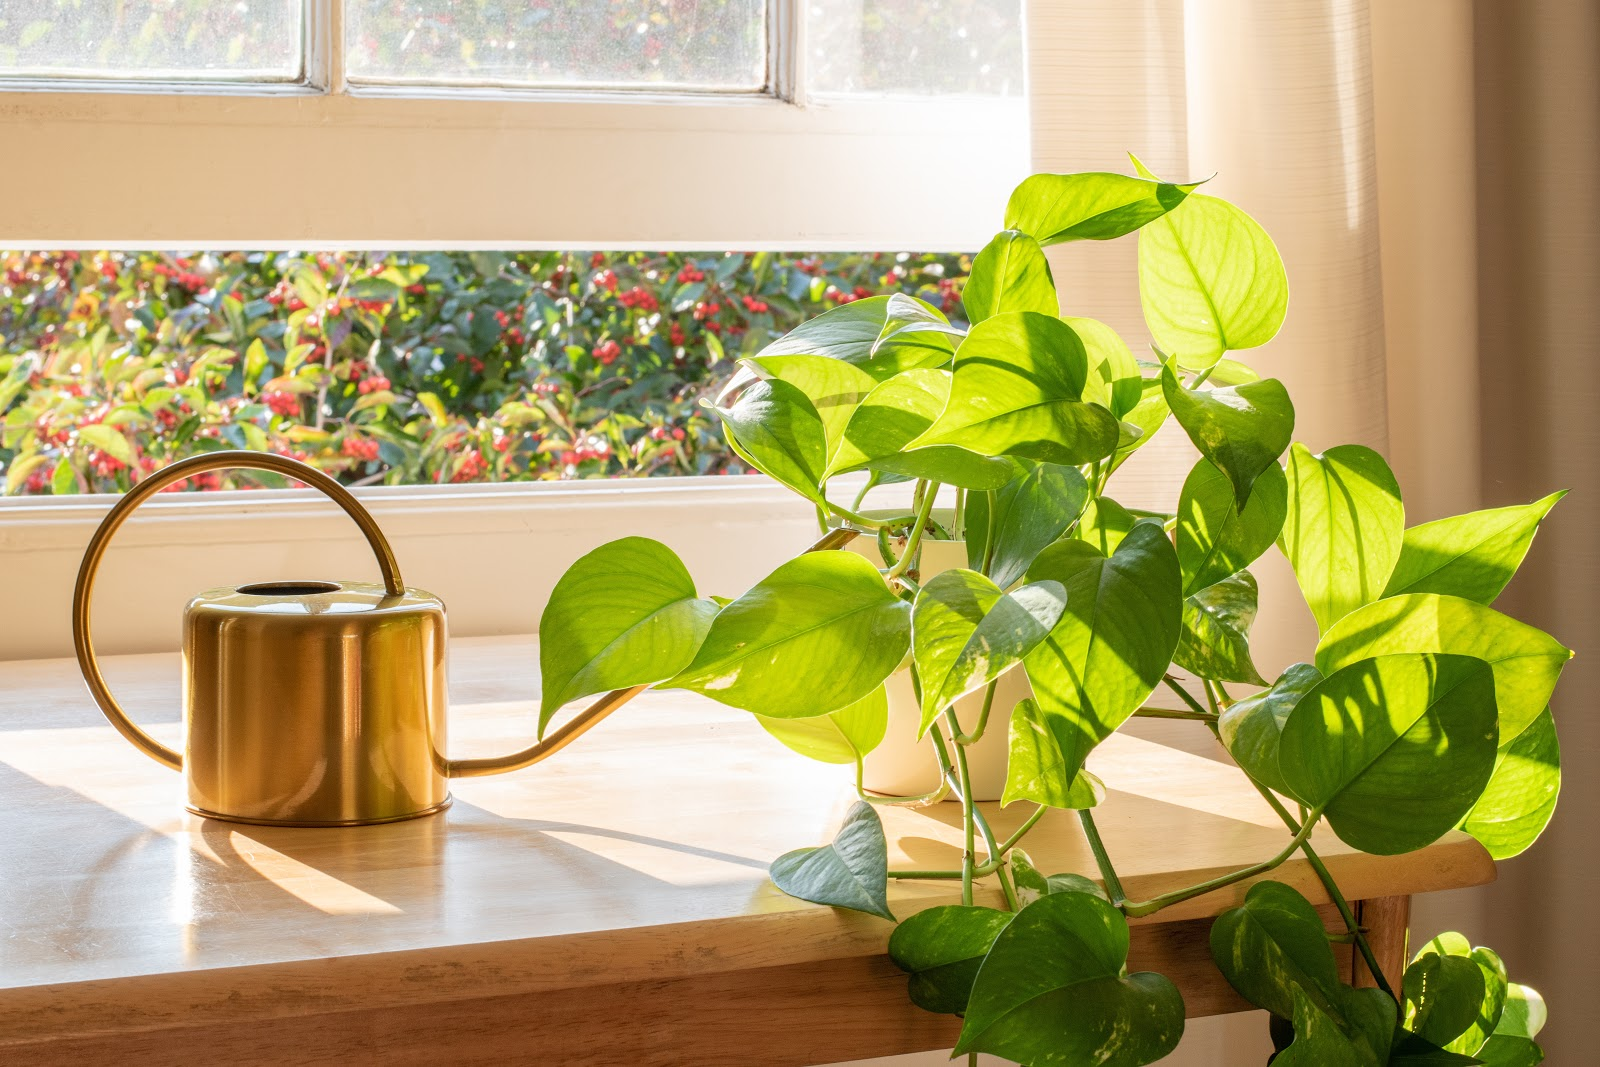 pothos plant care: pothos plant and a watering can on a table